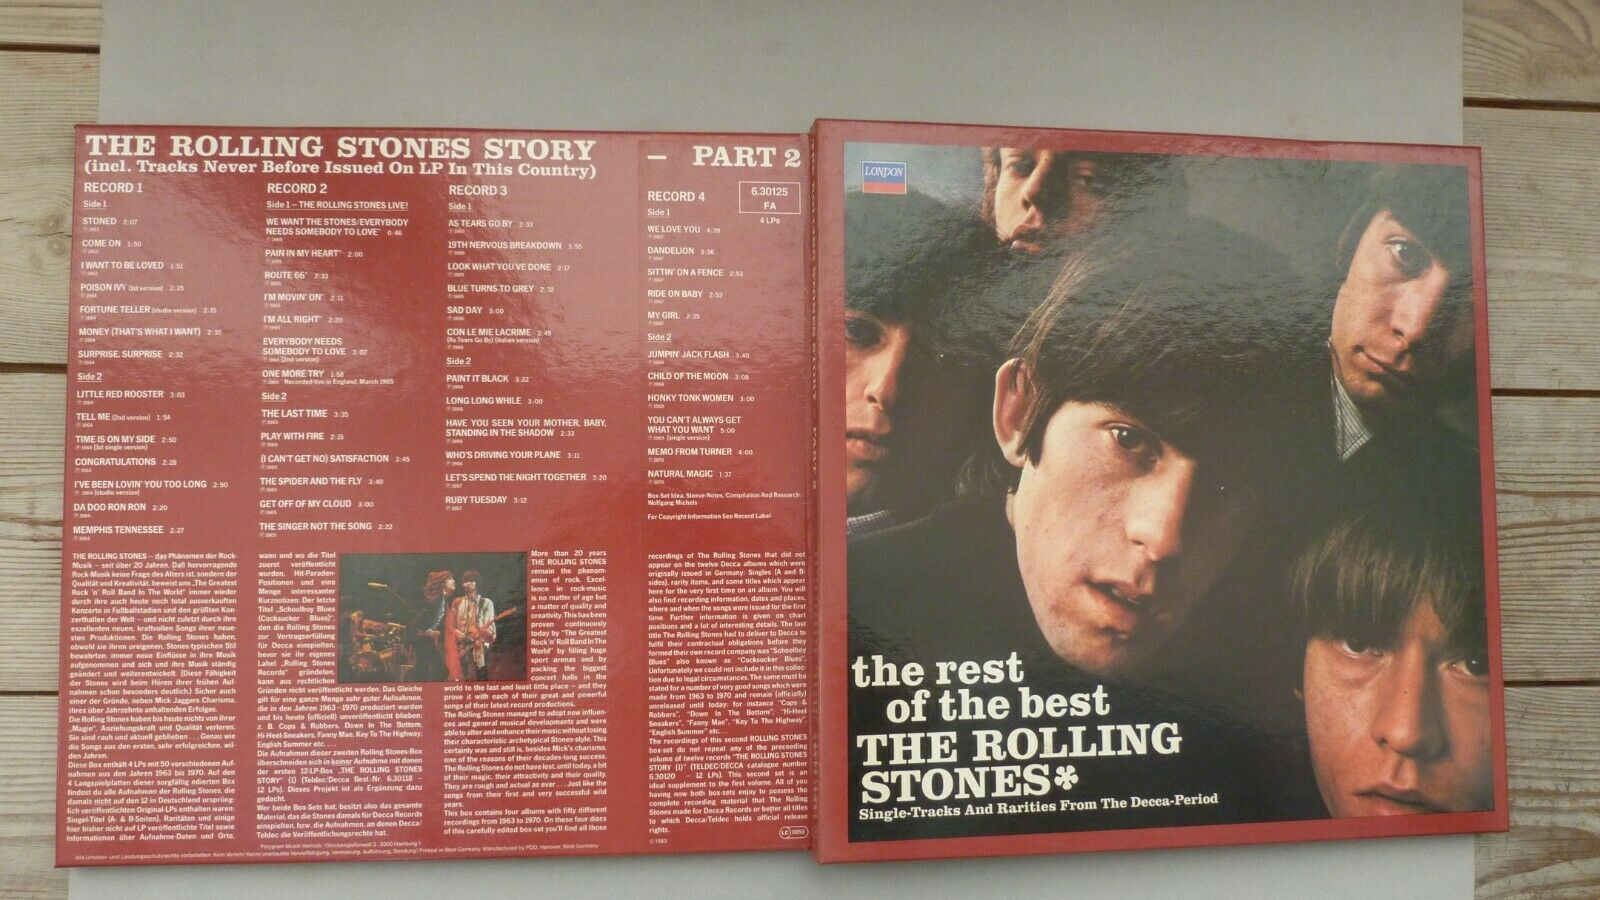 The Rolling Stones. 4LP Box. Story. Vol.2